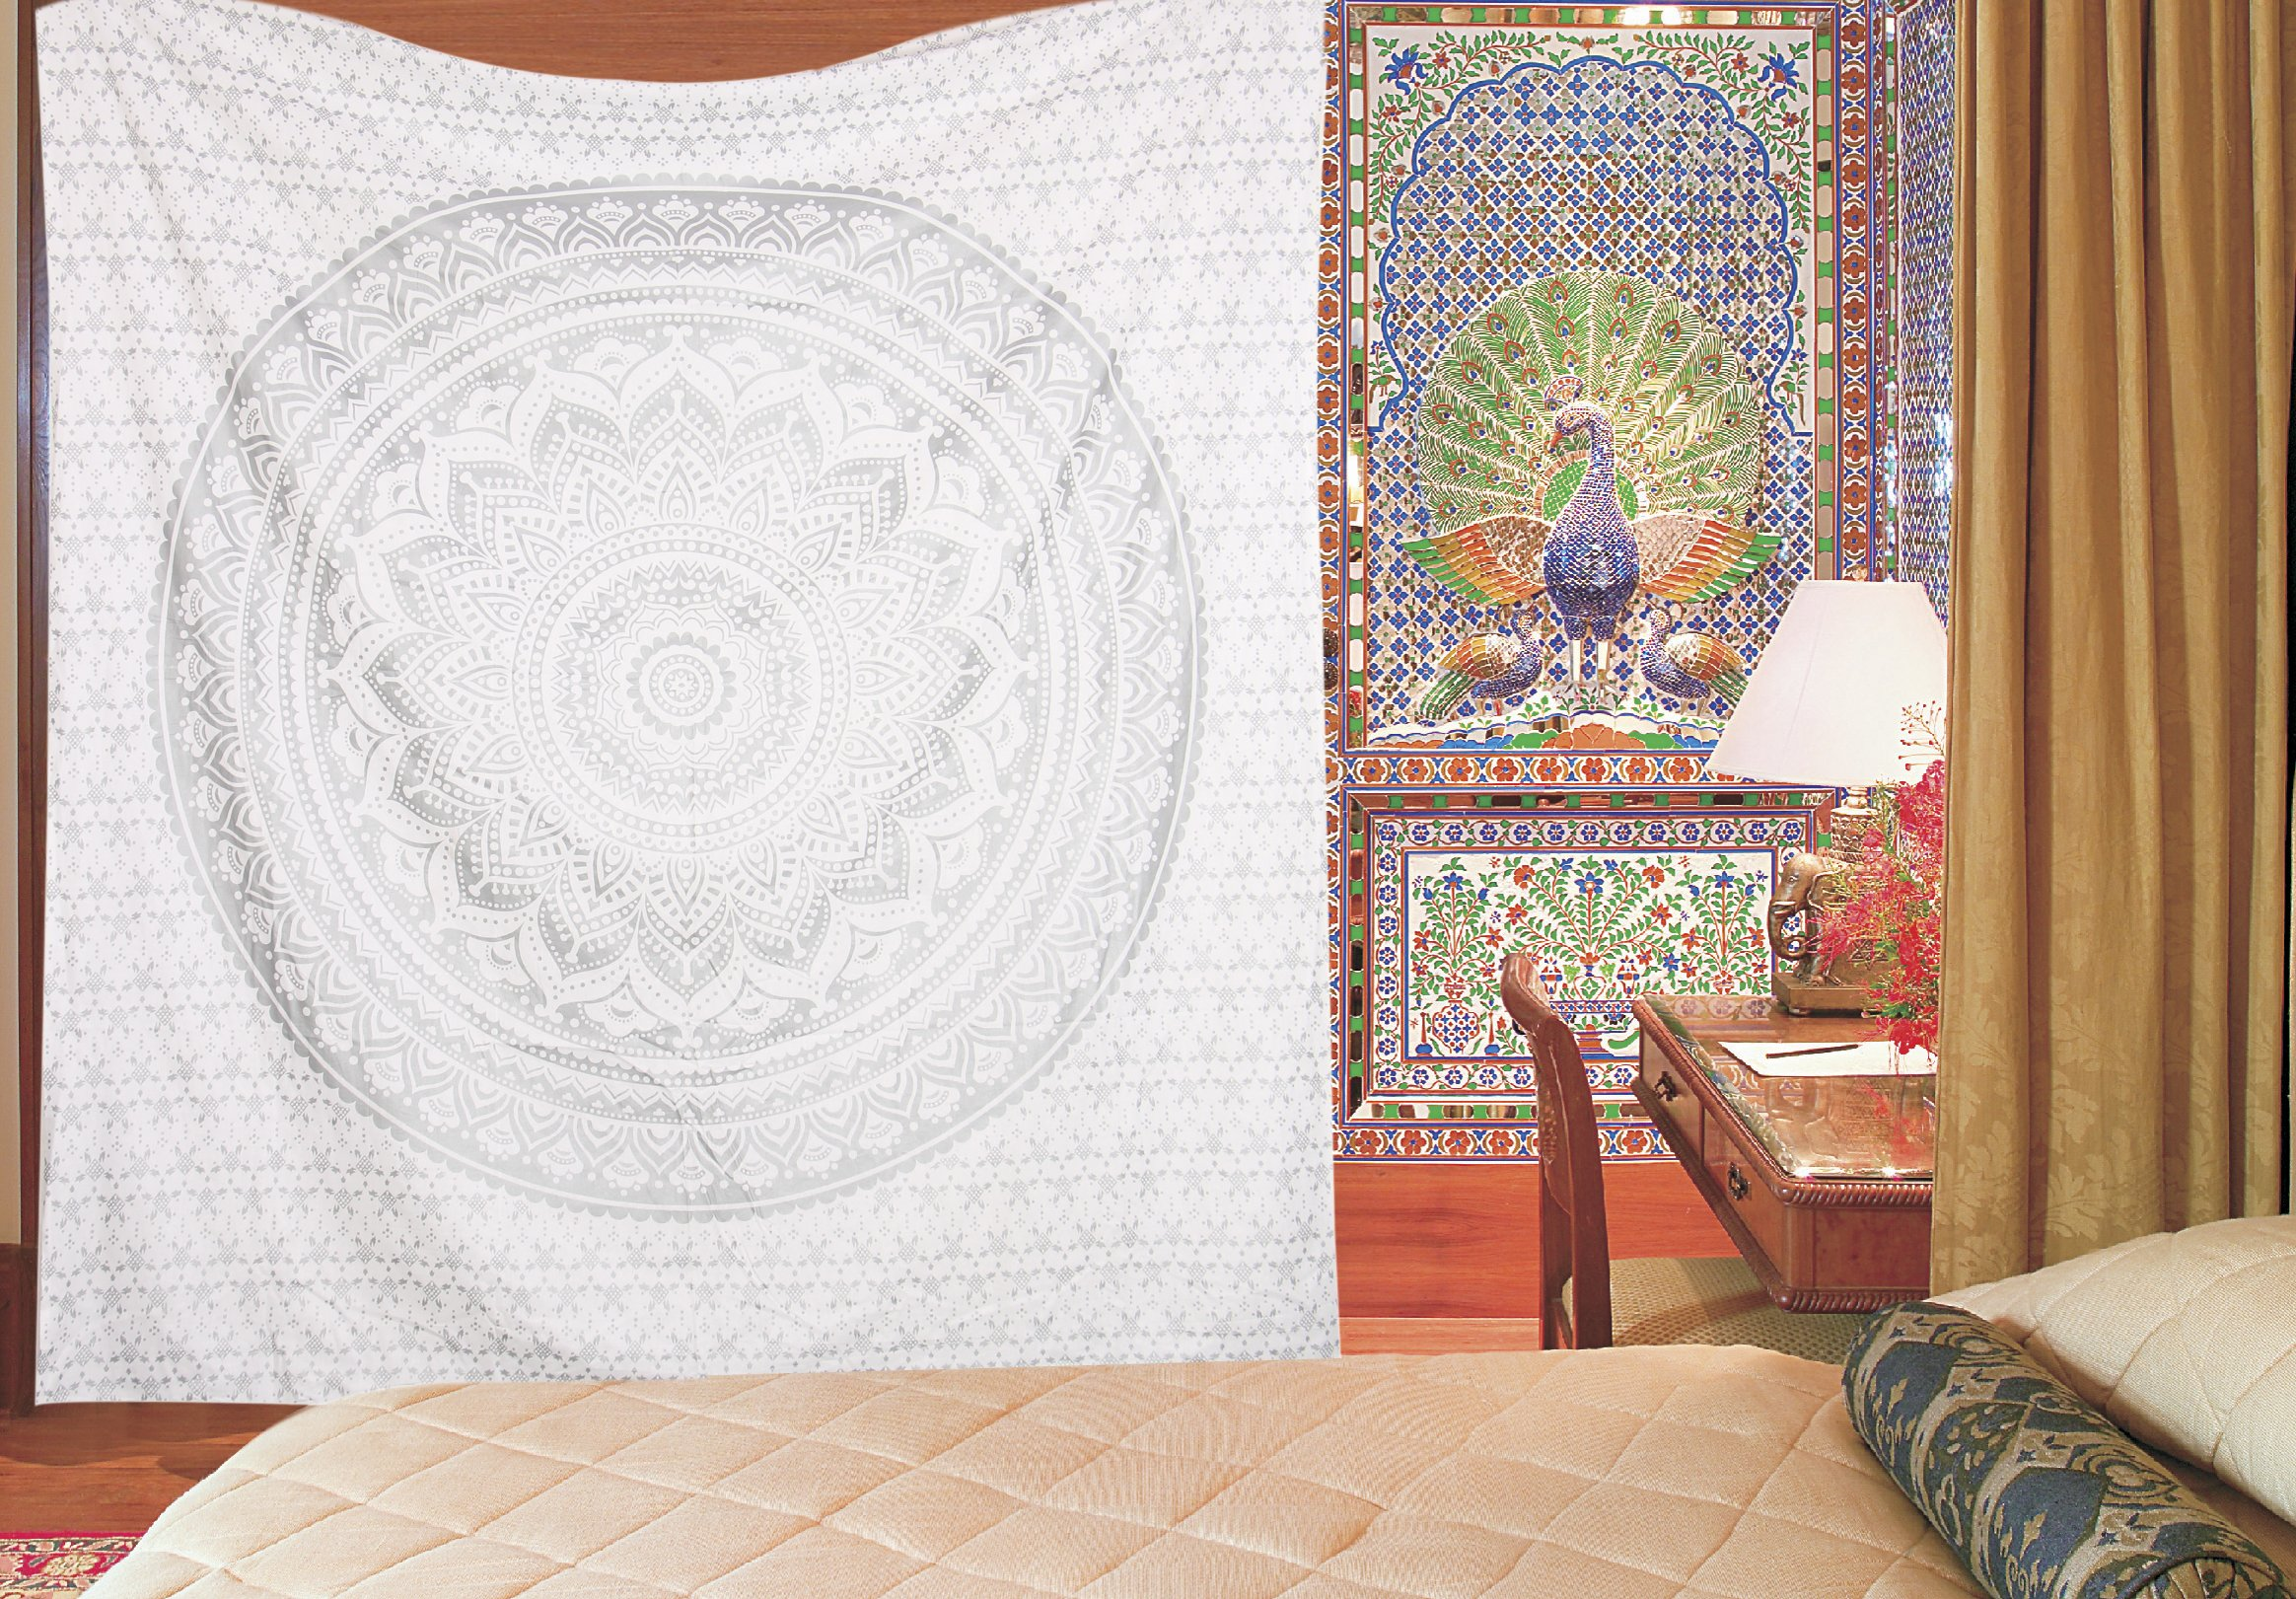 Apoorva's silver Ombre Tapestry, Ombre Bedding , Mandala Tapestry, Oreginal Silver Print Indian Mandala Wall Art Hippie Wall Hanging Bohemian Bedsprea